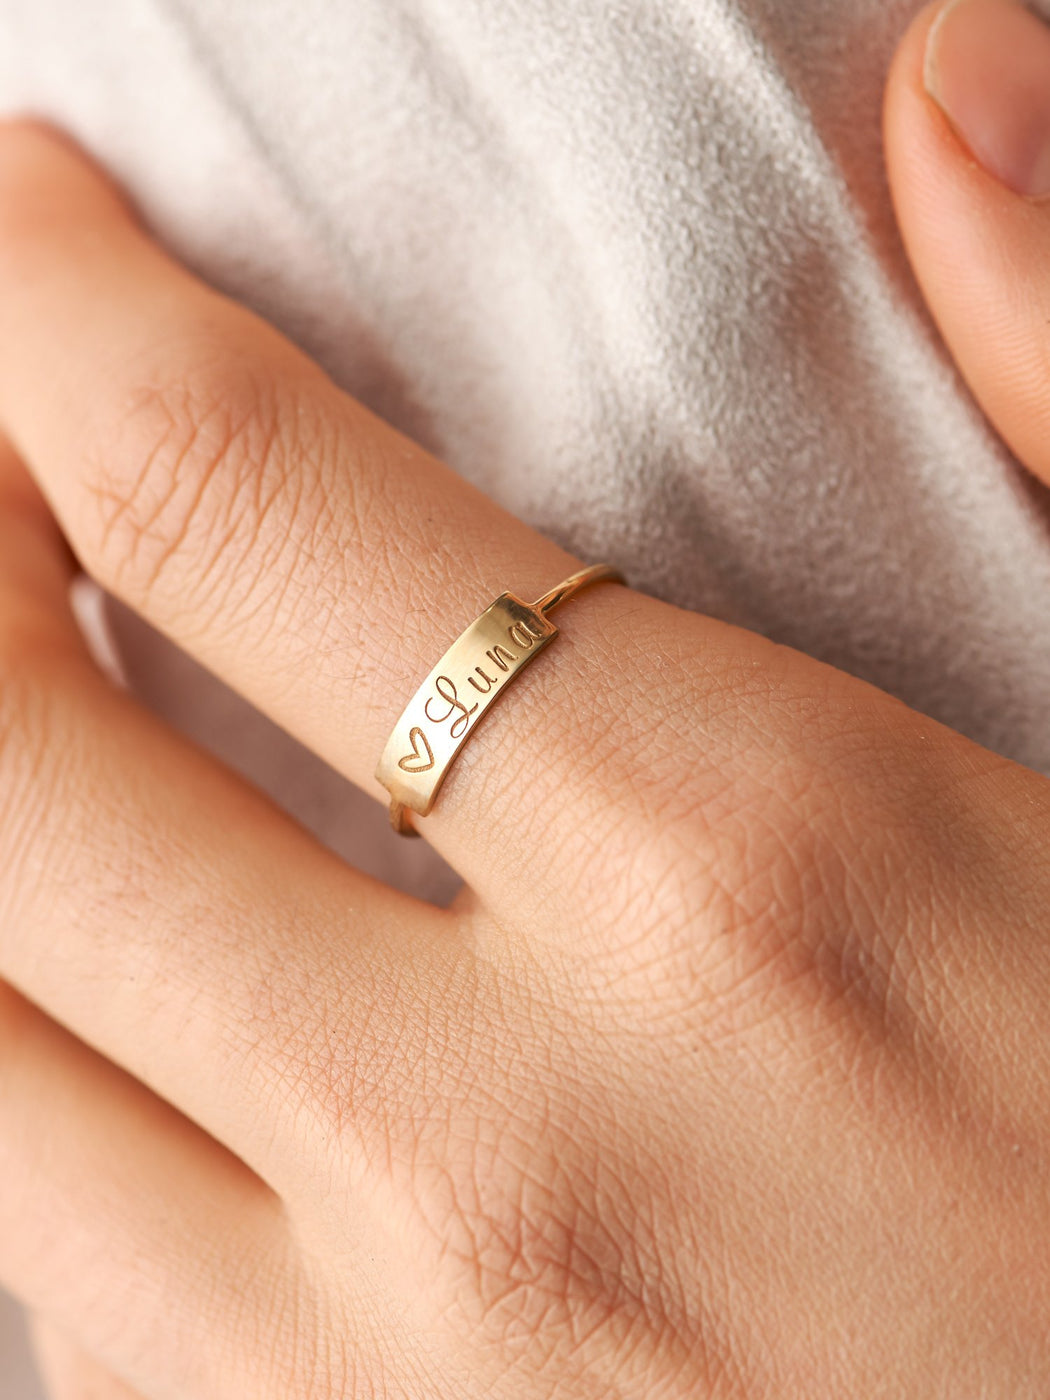 Small Personalized Name Ring